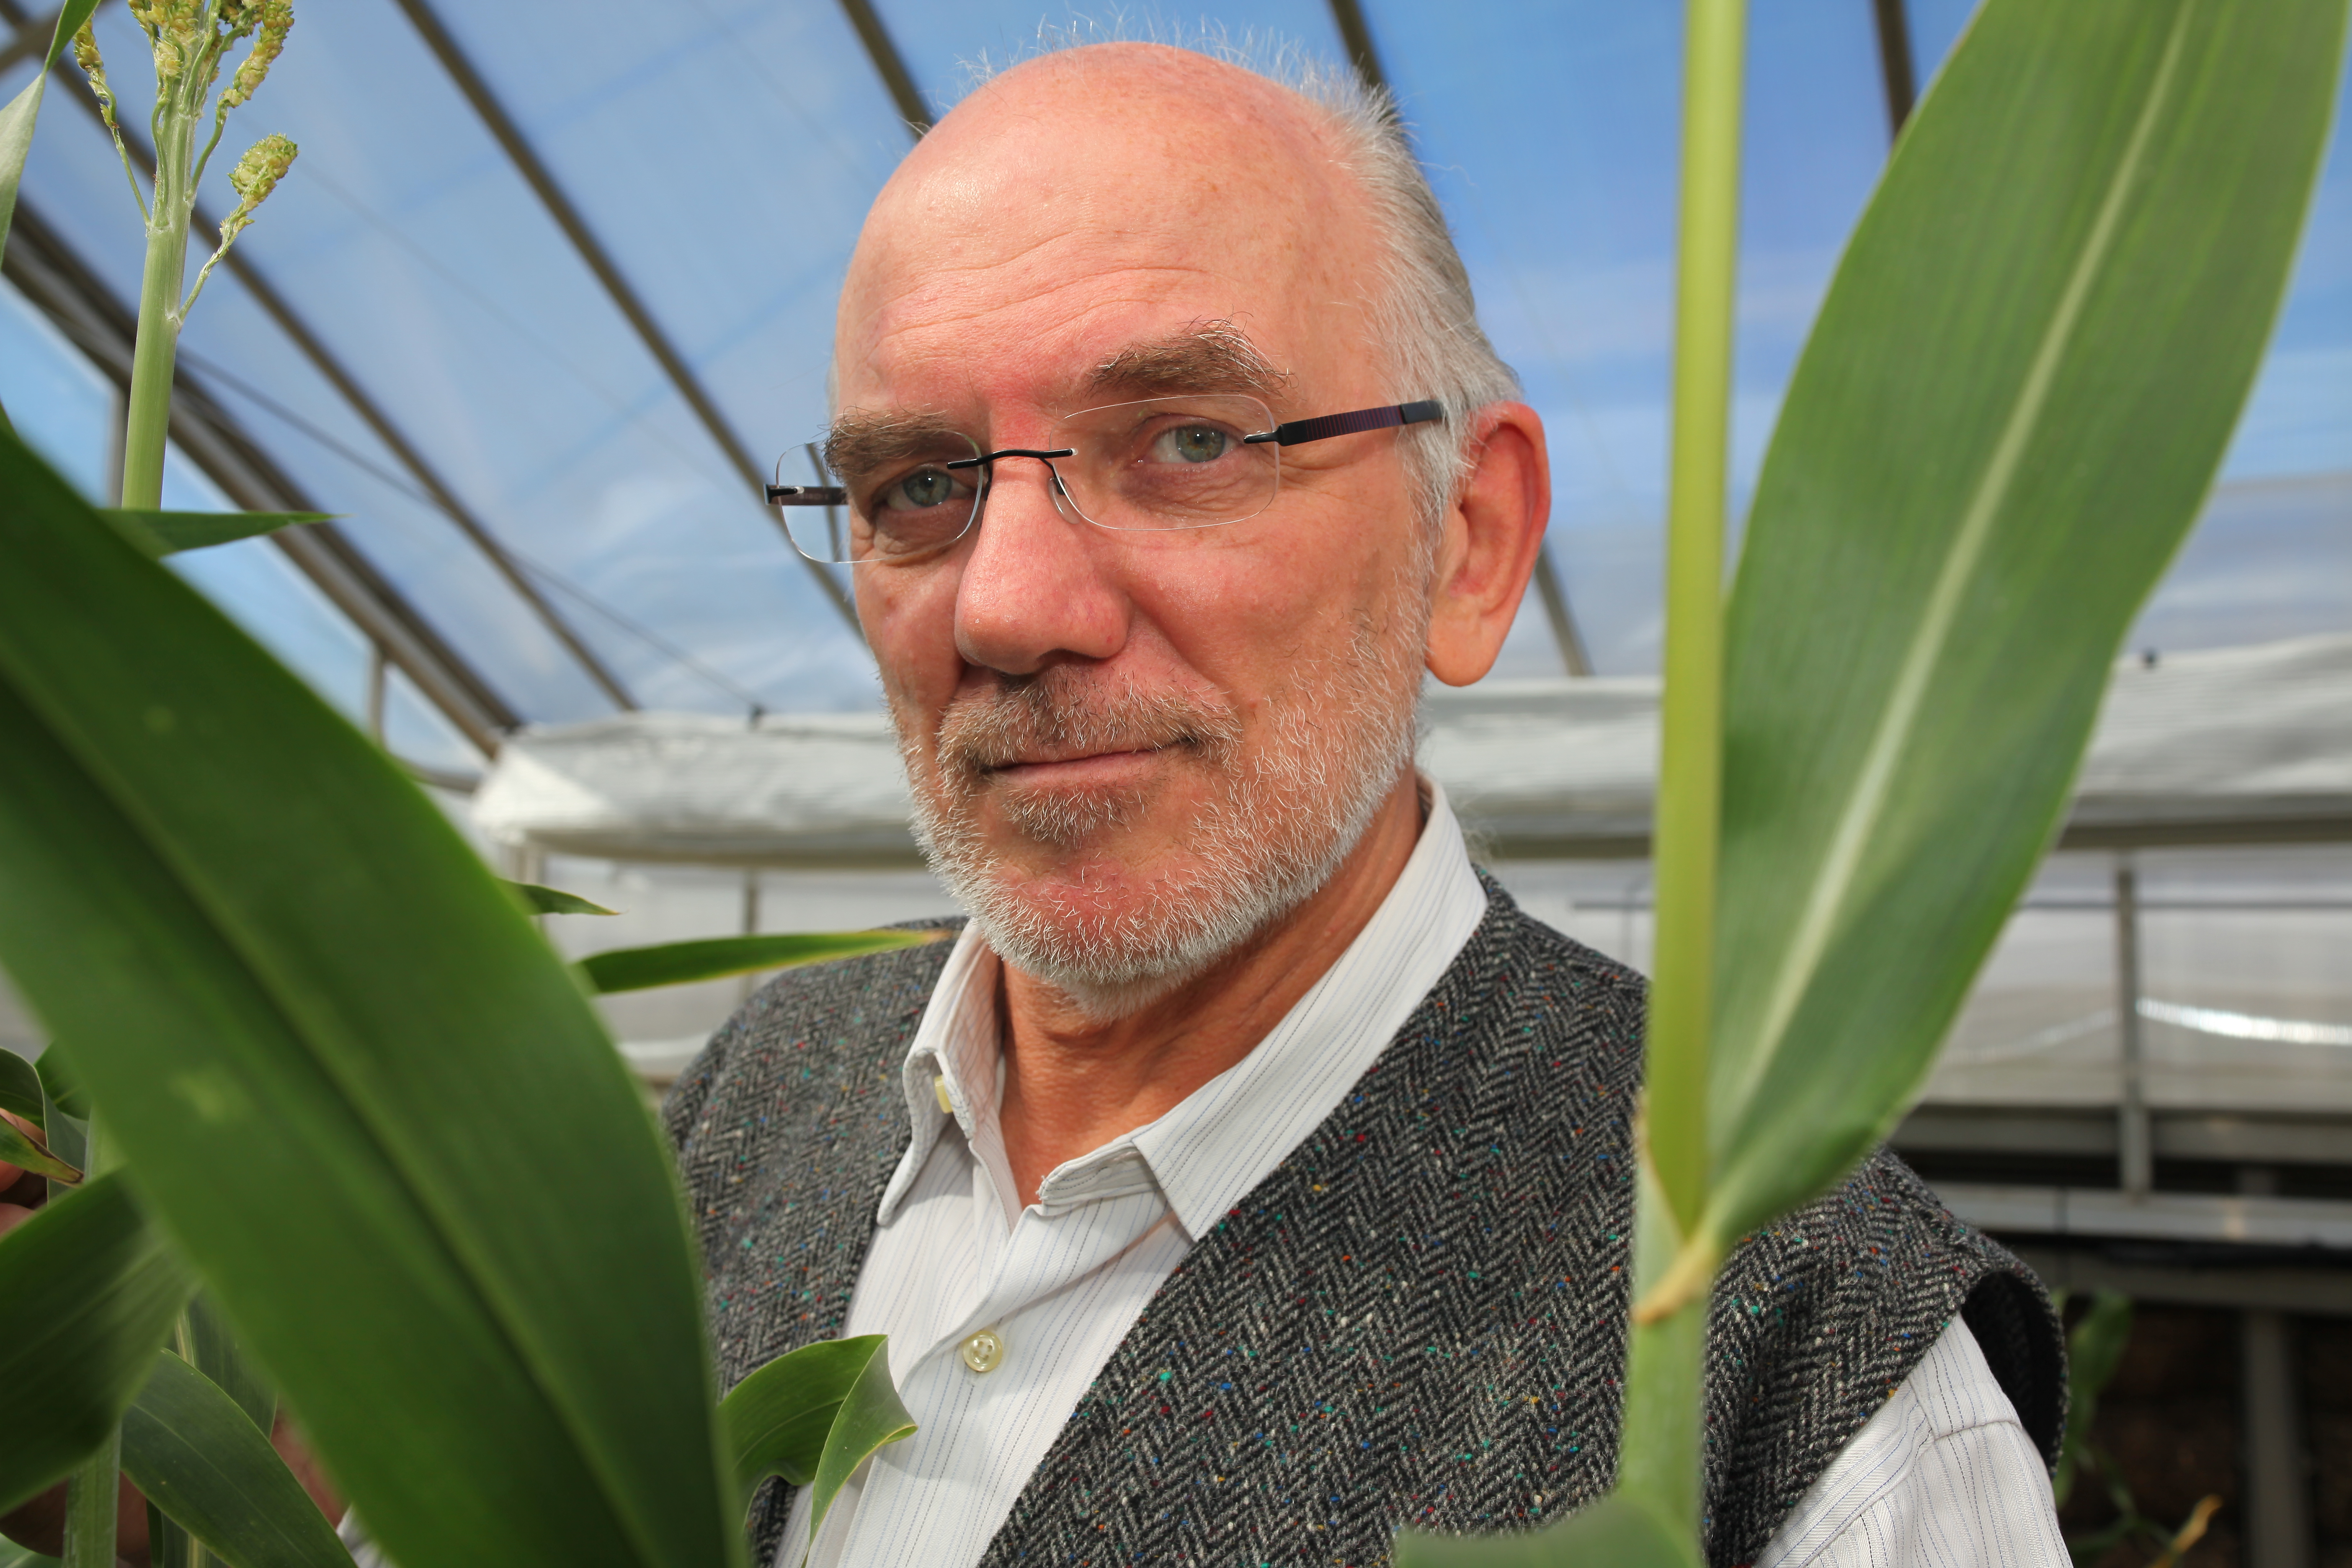 Image of Professor Graeme Hammer, Director of the University of Queensland's Centre for Plant Science at the Queensland Alliance for Agriculture and Food Innovation (QAAFI).